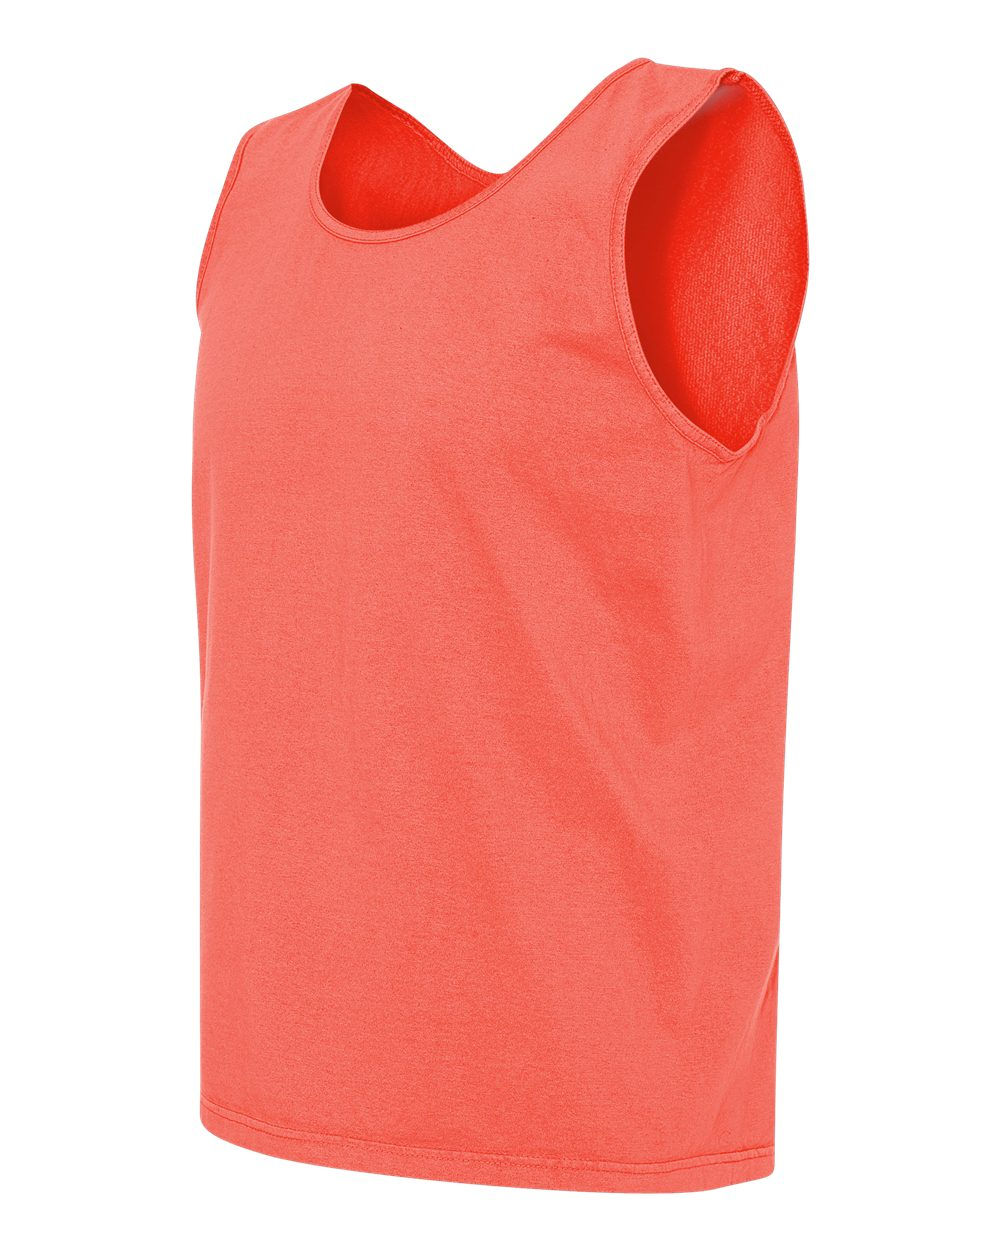 comfort tridelta shop tanks colors comforter classic unisex tank boutique swatch apparel greek